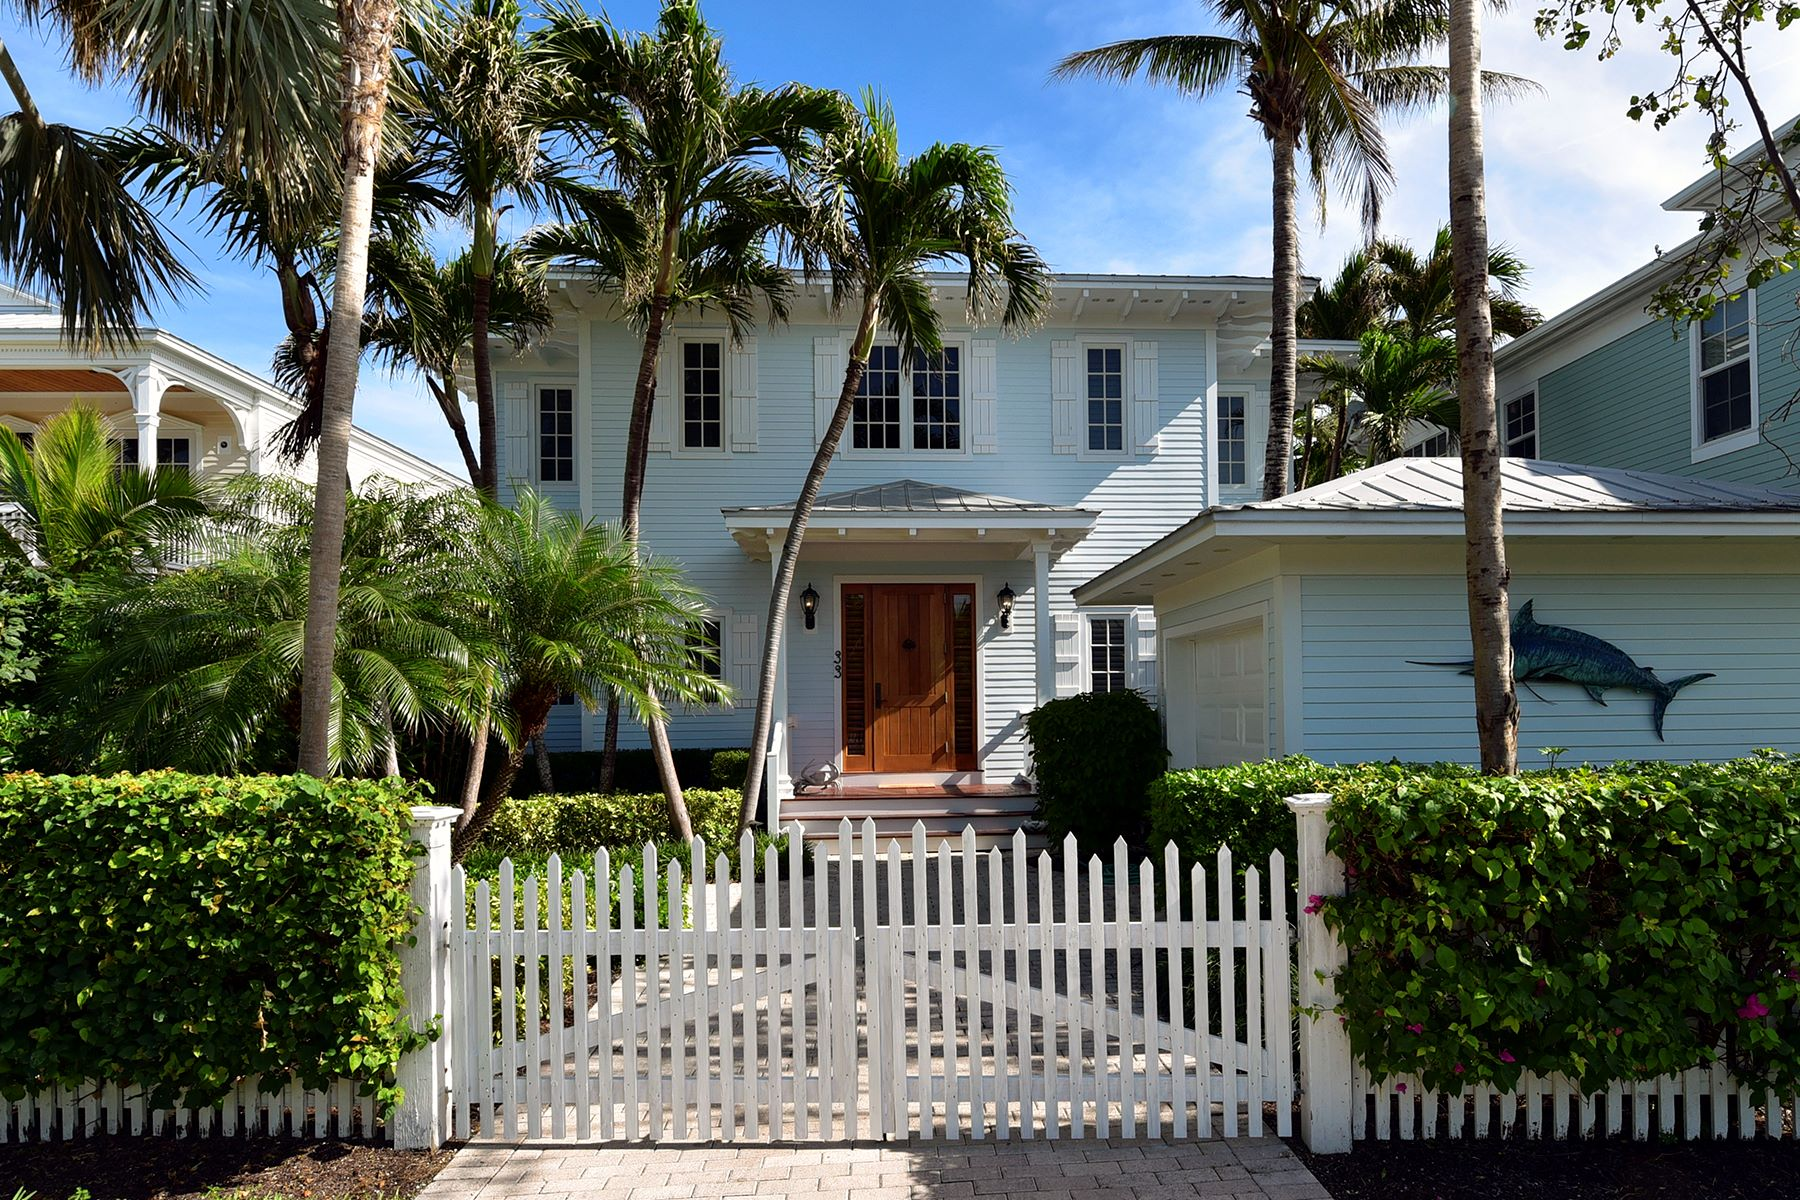 Maison unifamiliale pour l Vente à Waterfront Home on Oversized Lot 33 Sunset Key Drive, Key West, Florida, 33040 États-Unis